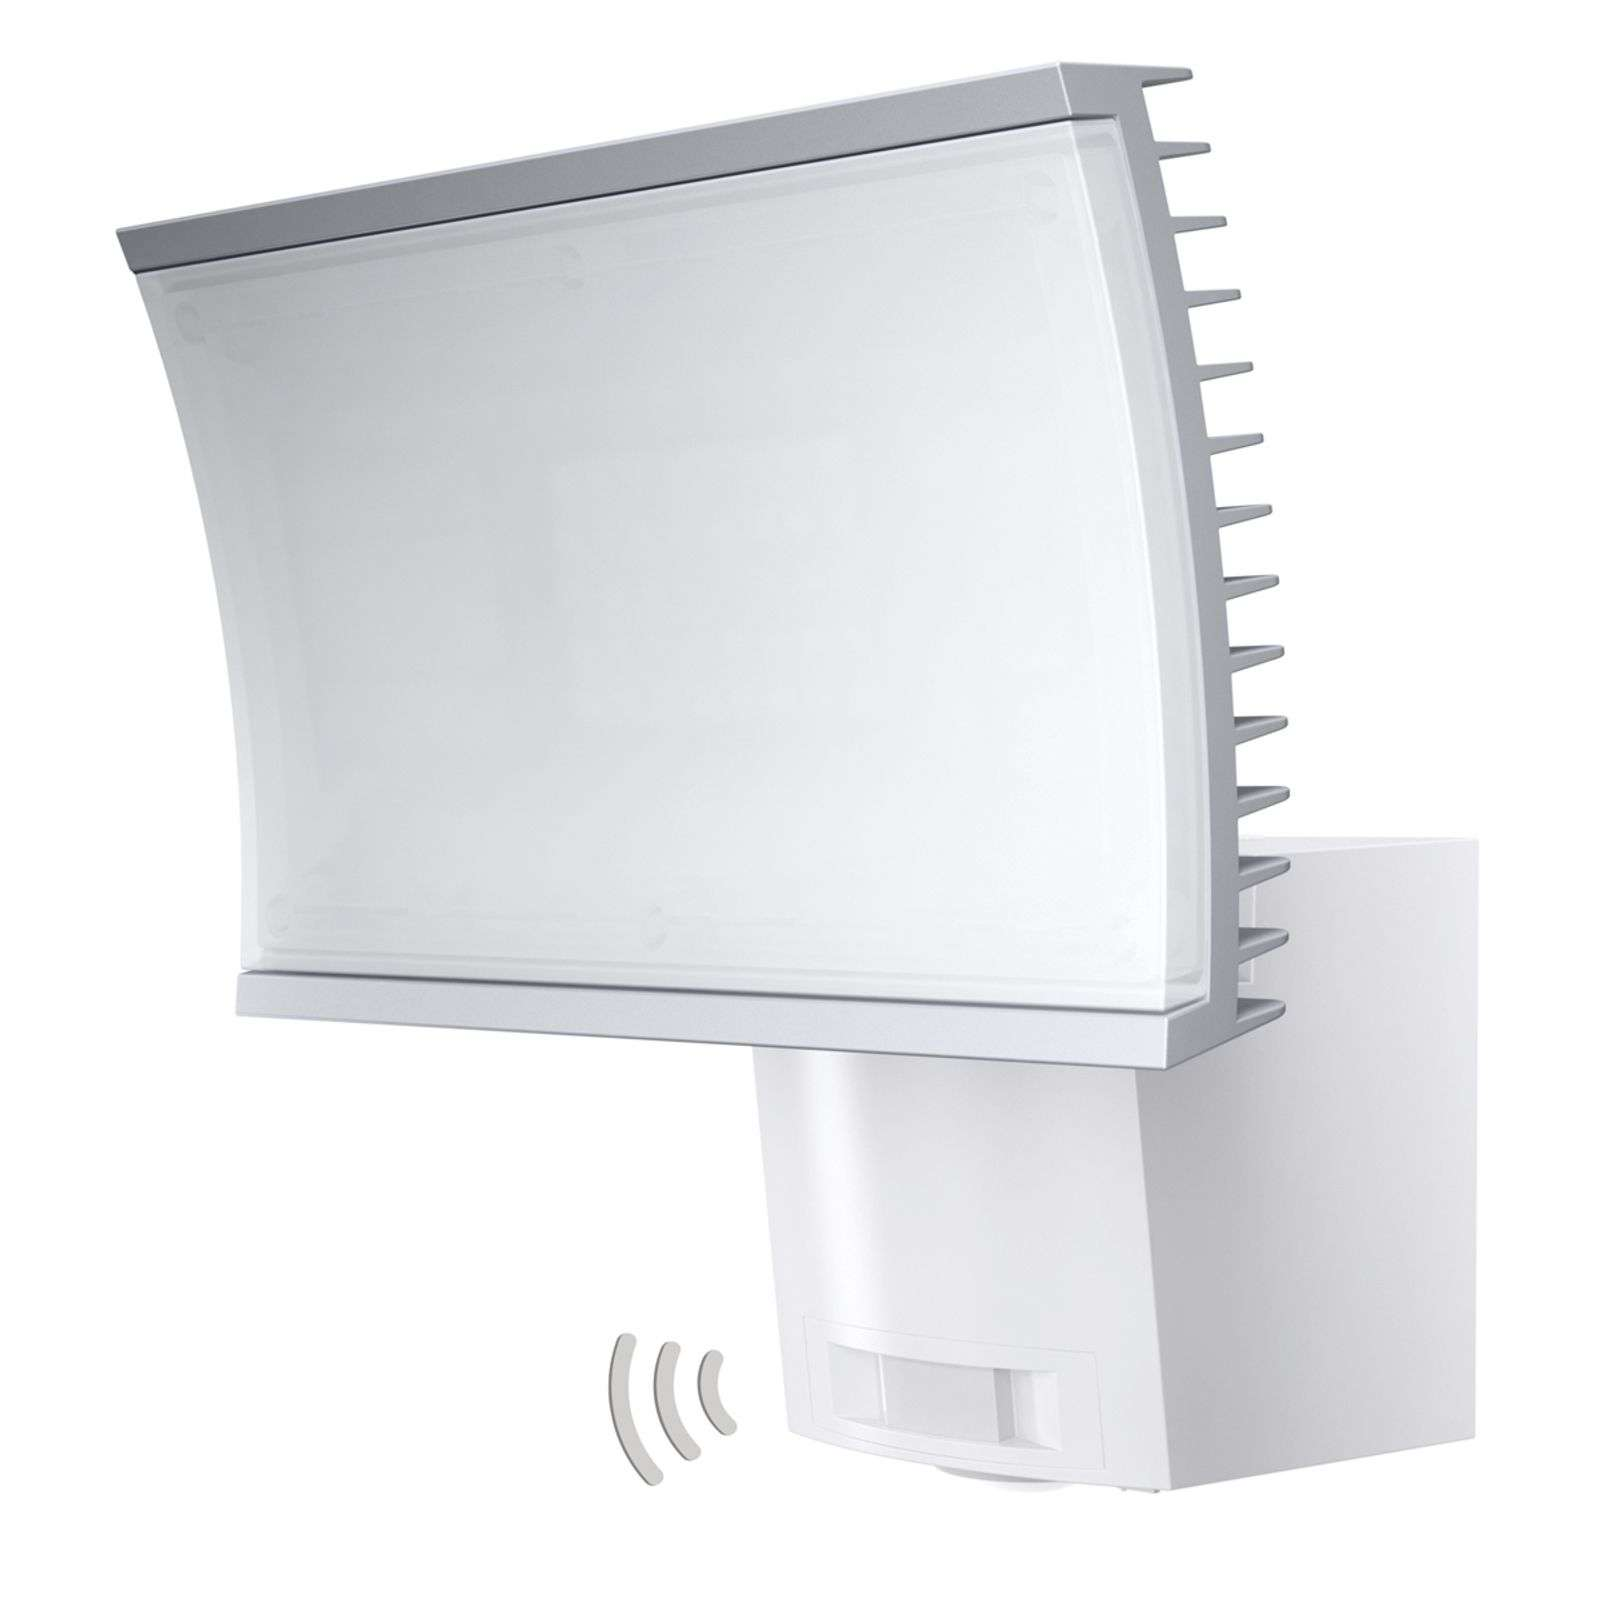 Applique LED blanche Floodlight, capteur IR